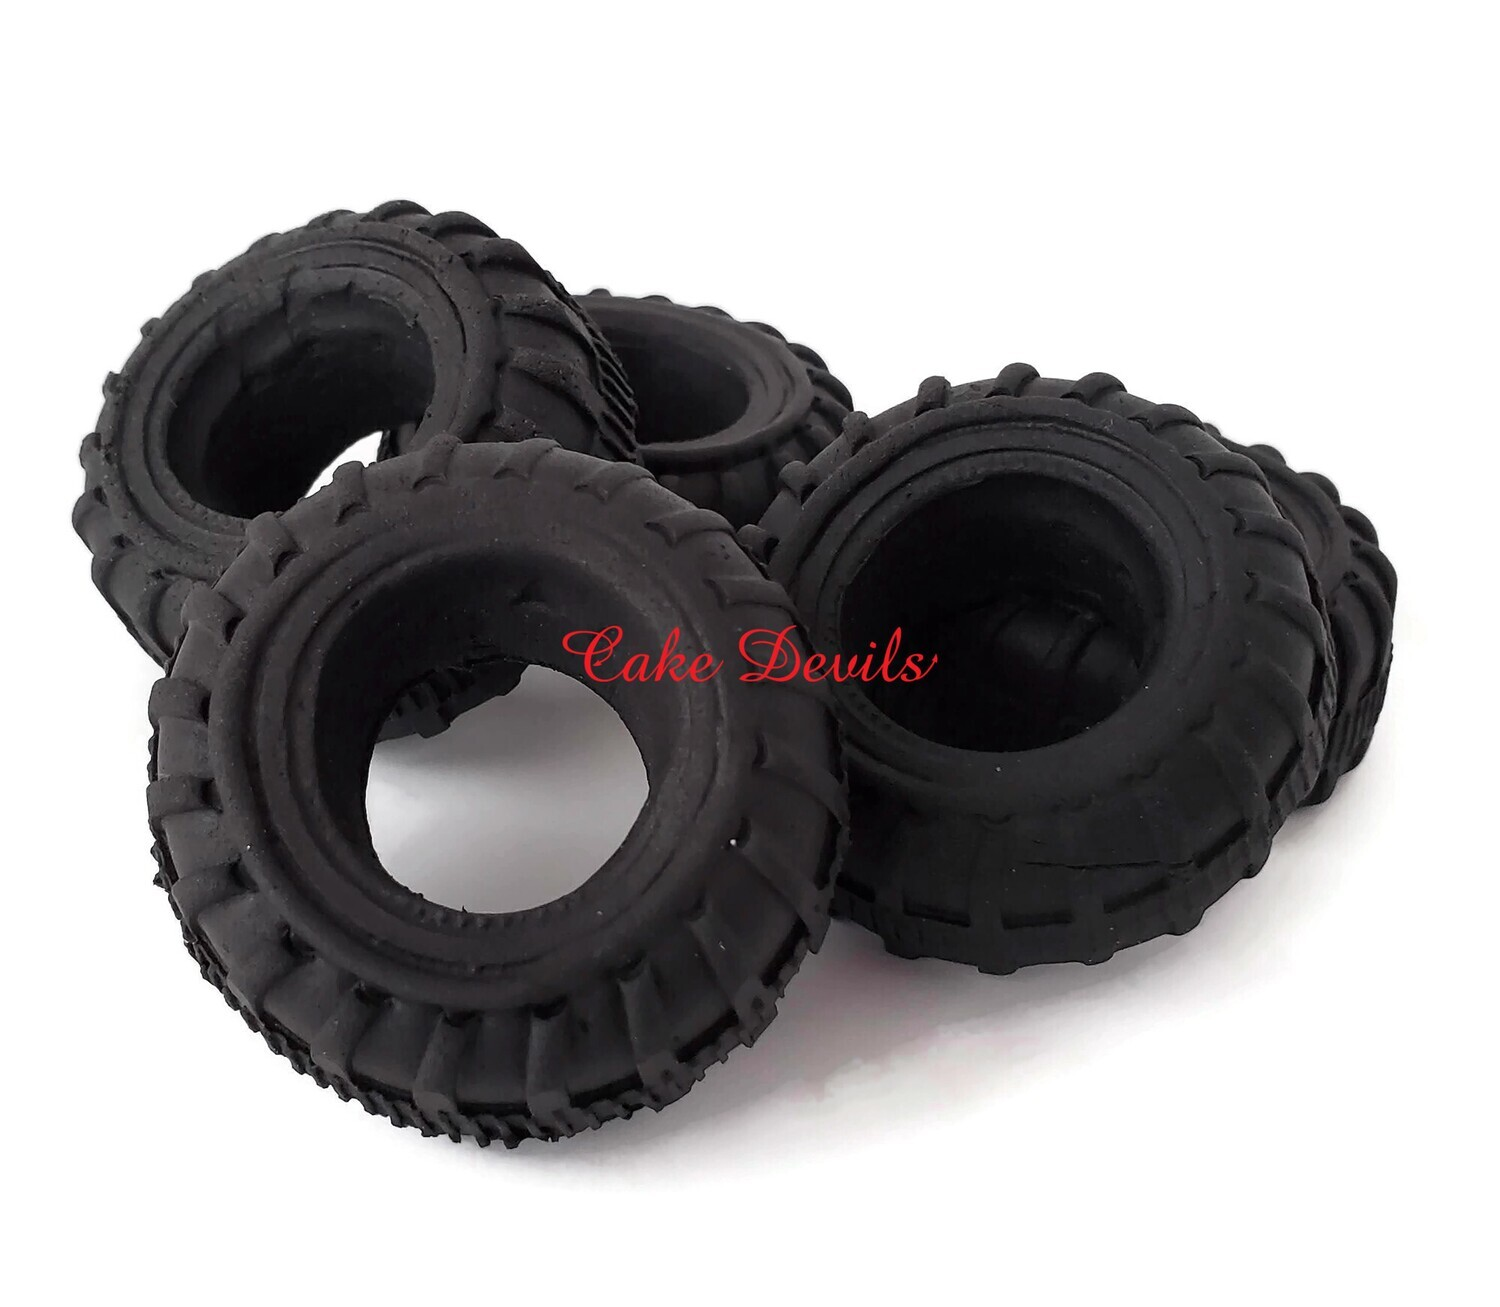 Fondant Tires Cake Decorations for Car or Truck Cake, Edible Tires for Cake and Cupcake Toppers